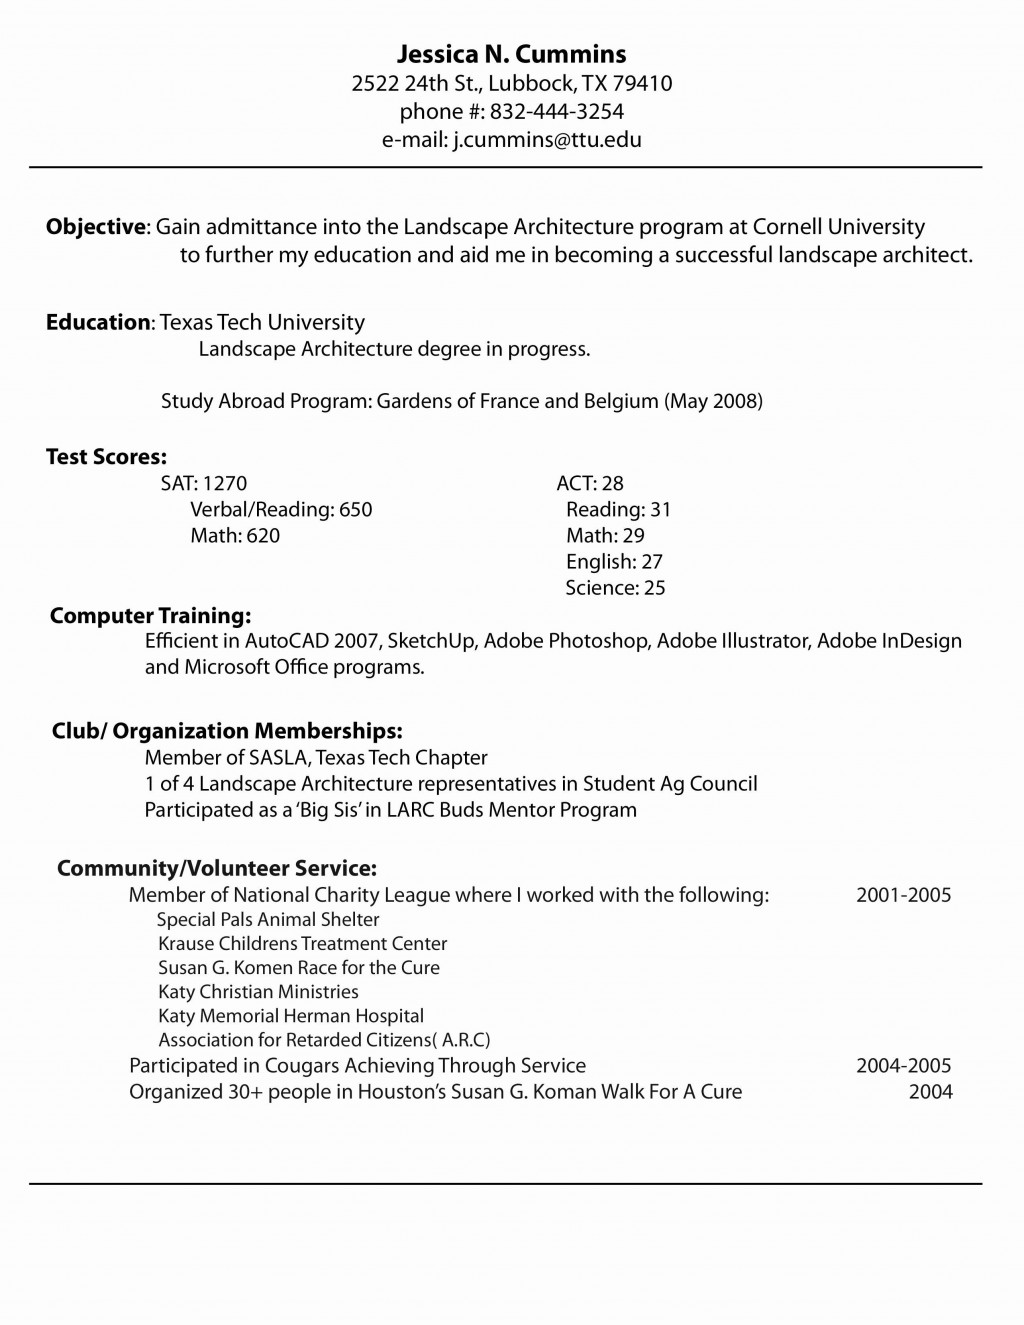 009 Quick Resume Builder Free New Autism Cover Letters Benjamin Franklin Chess Essay Cornell Of Unbelievable Thesis Statement Conclusion Large